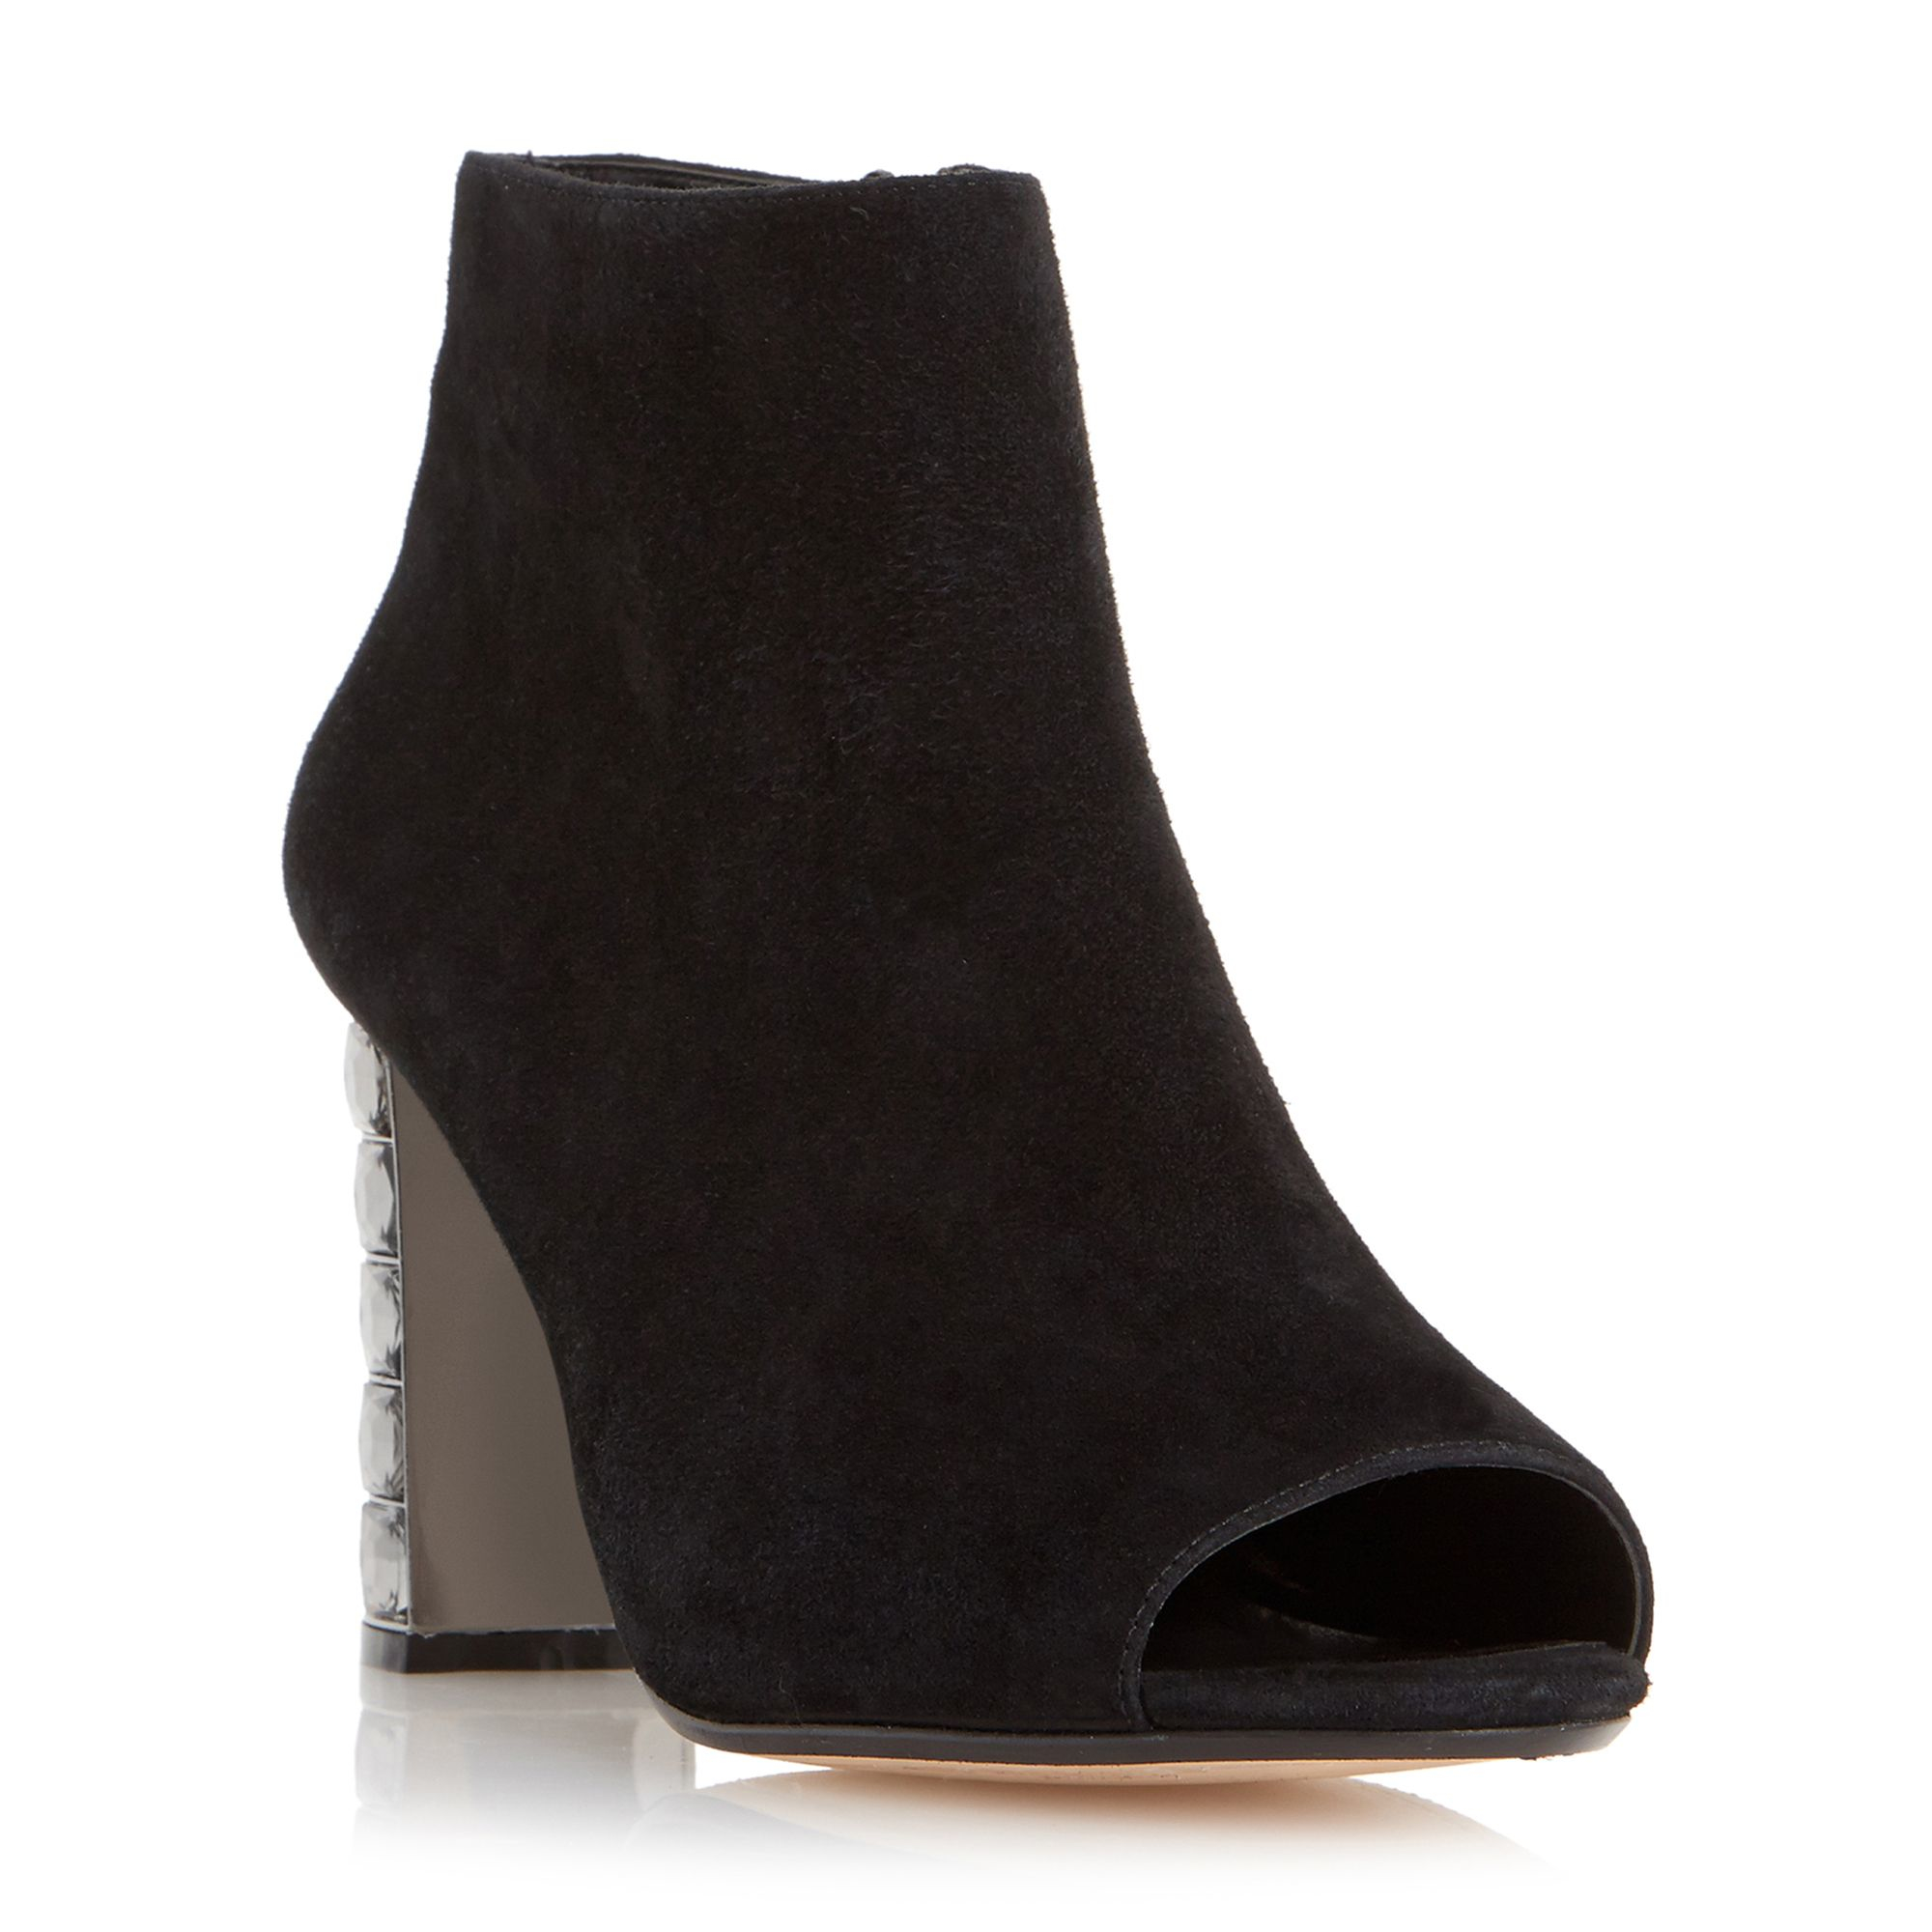 dune daniela block heel peep toe shoeboots in black lyst